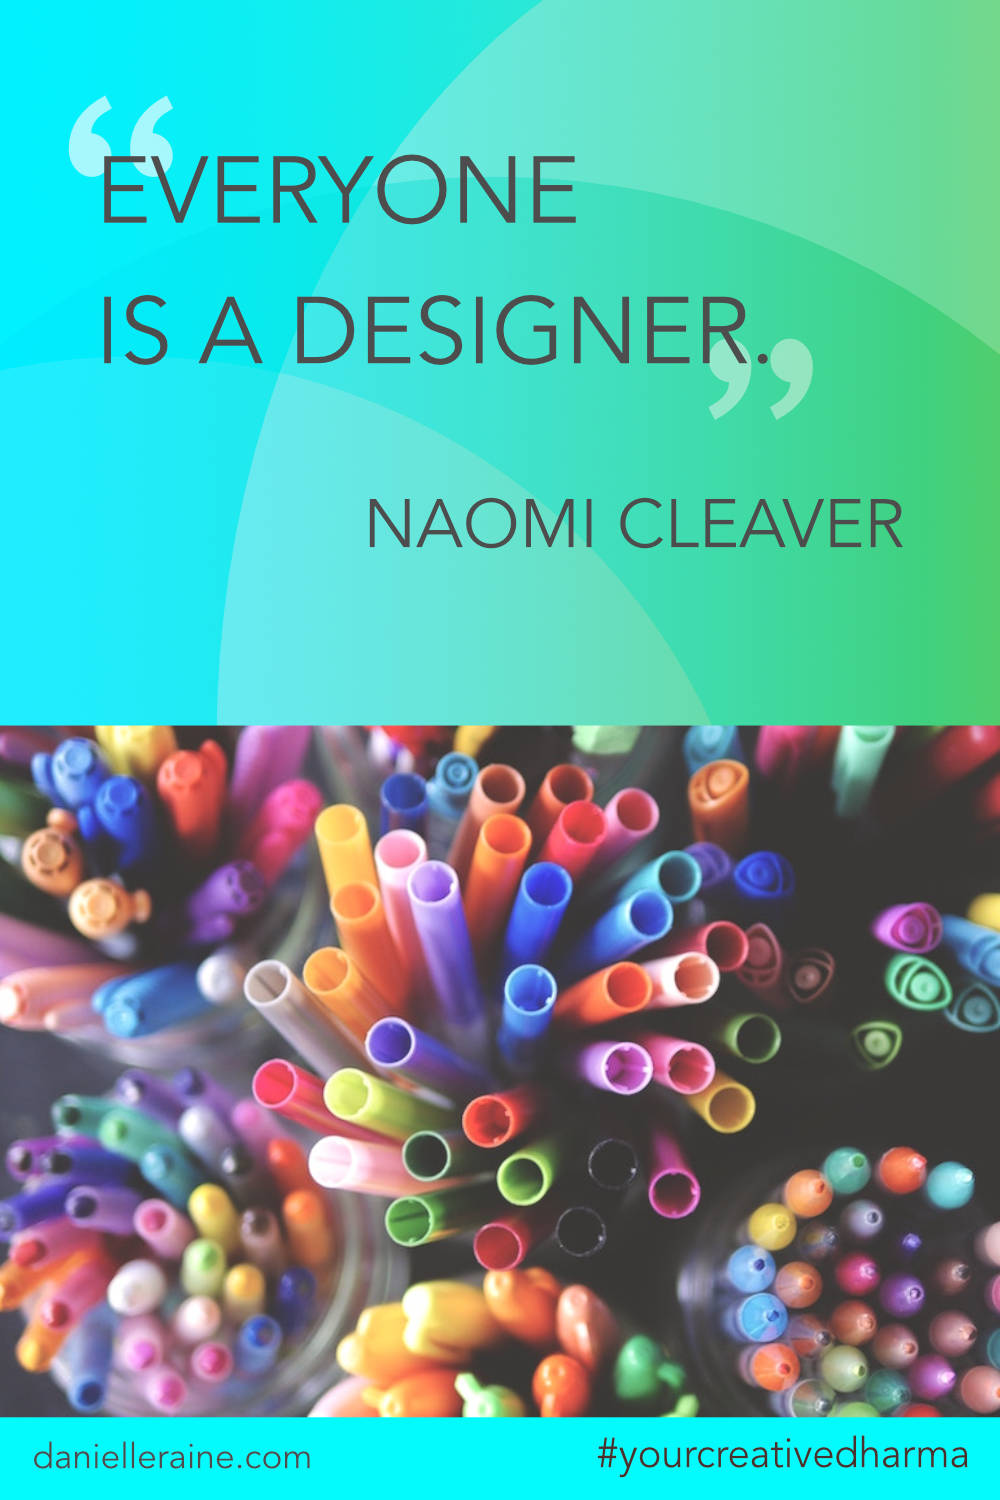 Your Creative Dharma quote naomi cleaver designer